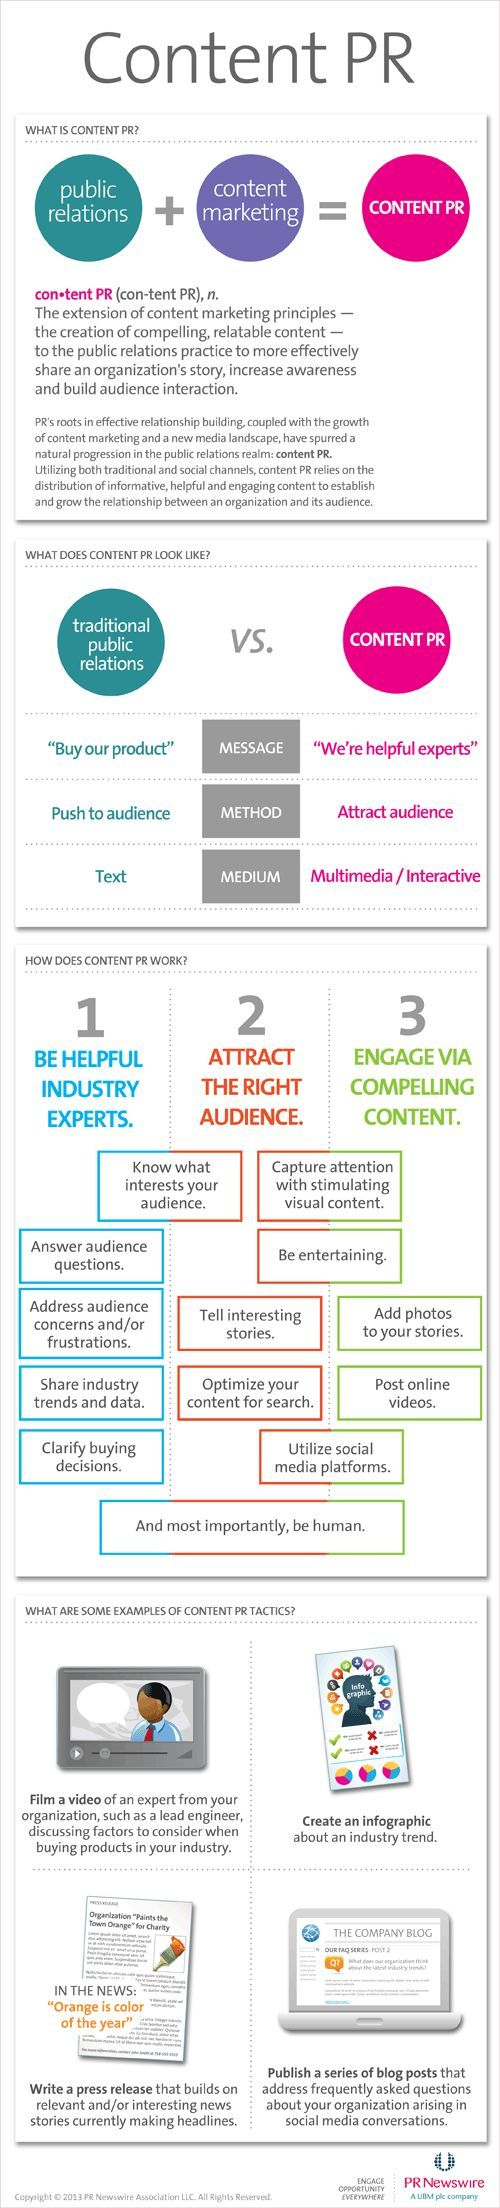 What Is Content Public Relations And What Is Different From Traditional PR? #ContentPR #infographic